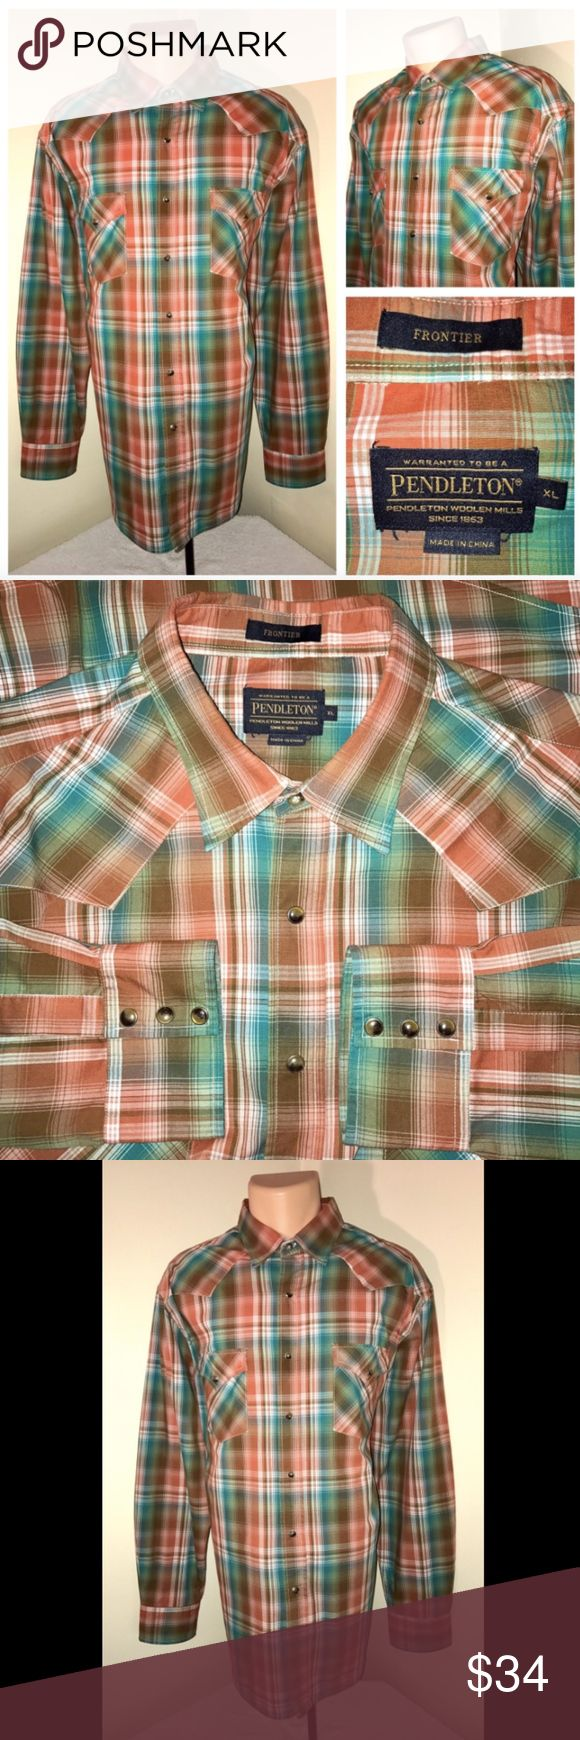 Pendleton Frontier Western Pearl Snap Shirt Sz XL ALL OFFERS CONSIDERED!   Description  Size: Extra Large Color: Rust Plaid Tag Measurements- XL Material: 100% Cotton Condition: Excellent  Features: Pearl Snaps, Long Sleeve, Comfortable and lightweight, Dual Breast Pockets Flaws: None  Measurements:  Chest - 25.5 inches  Shoulder - 20.5 inches  Sleeve - 25.5 inches  Length - 31.5 inches Pendleton Shirts Casual Button Down Shirts